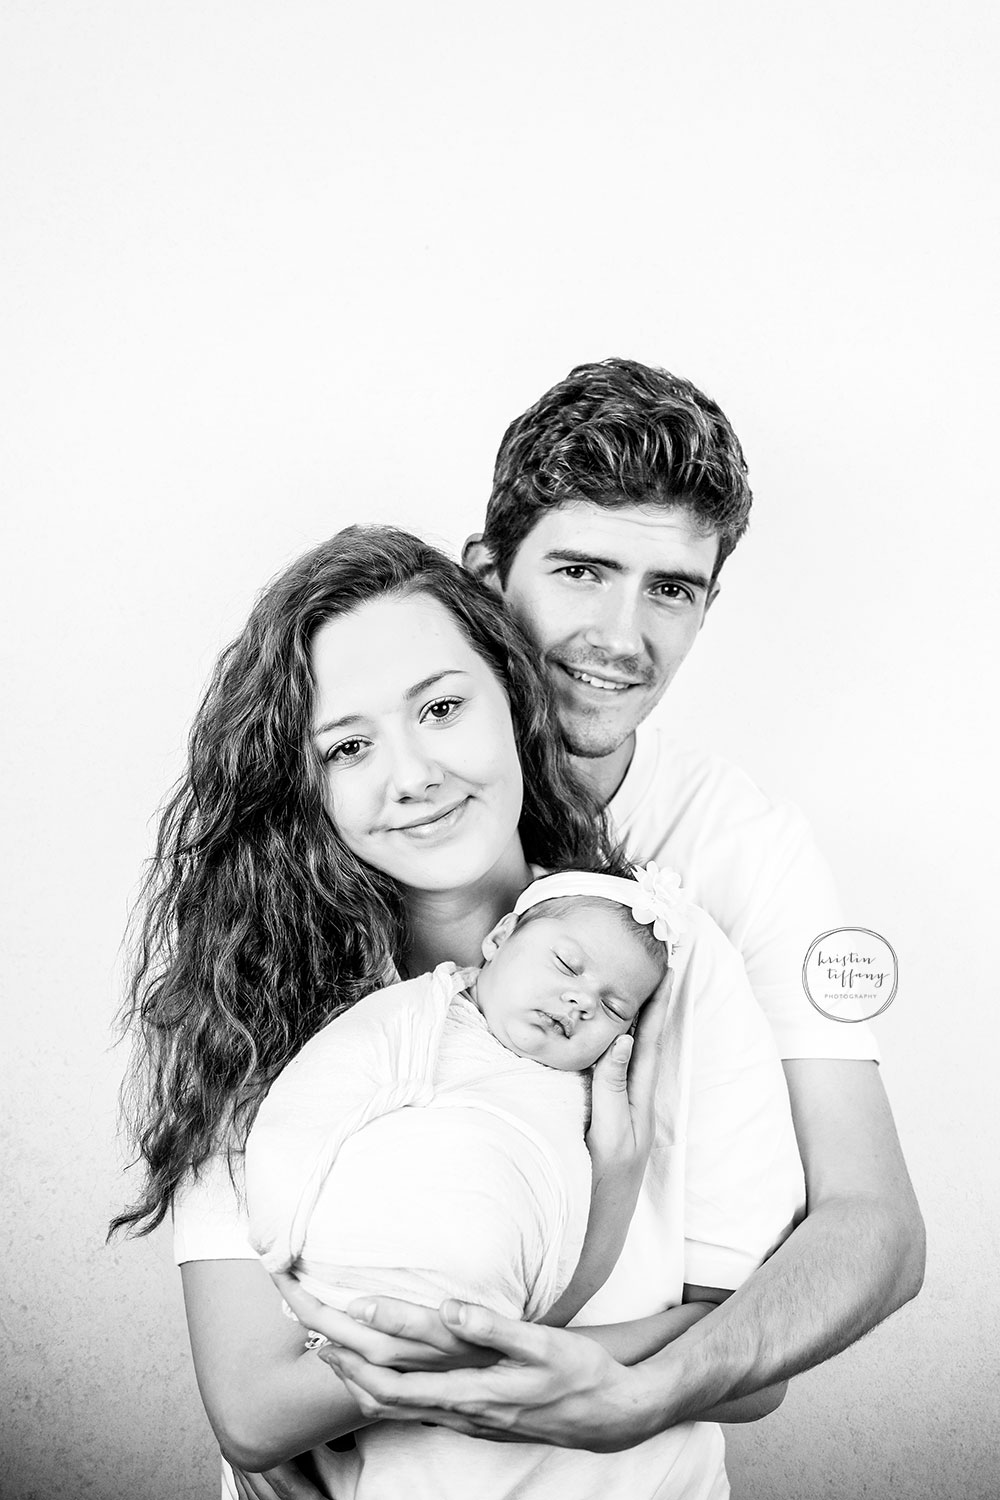 a photo of a baby girl and her family at a baby photo session